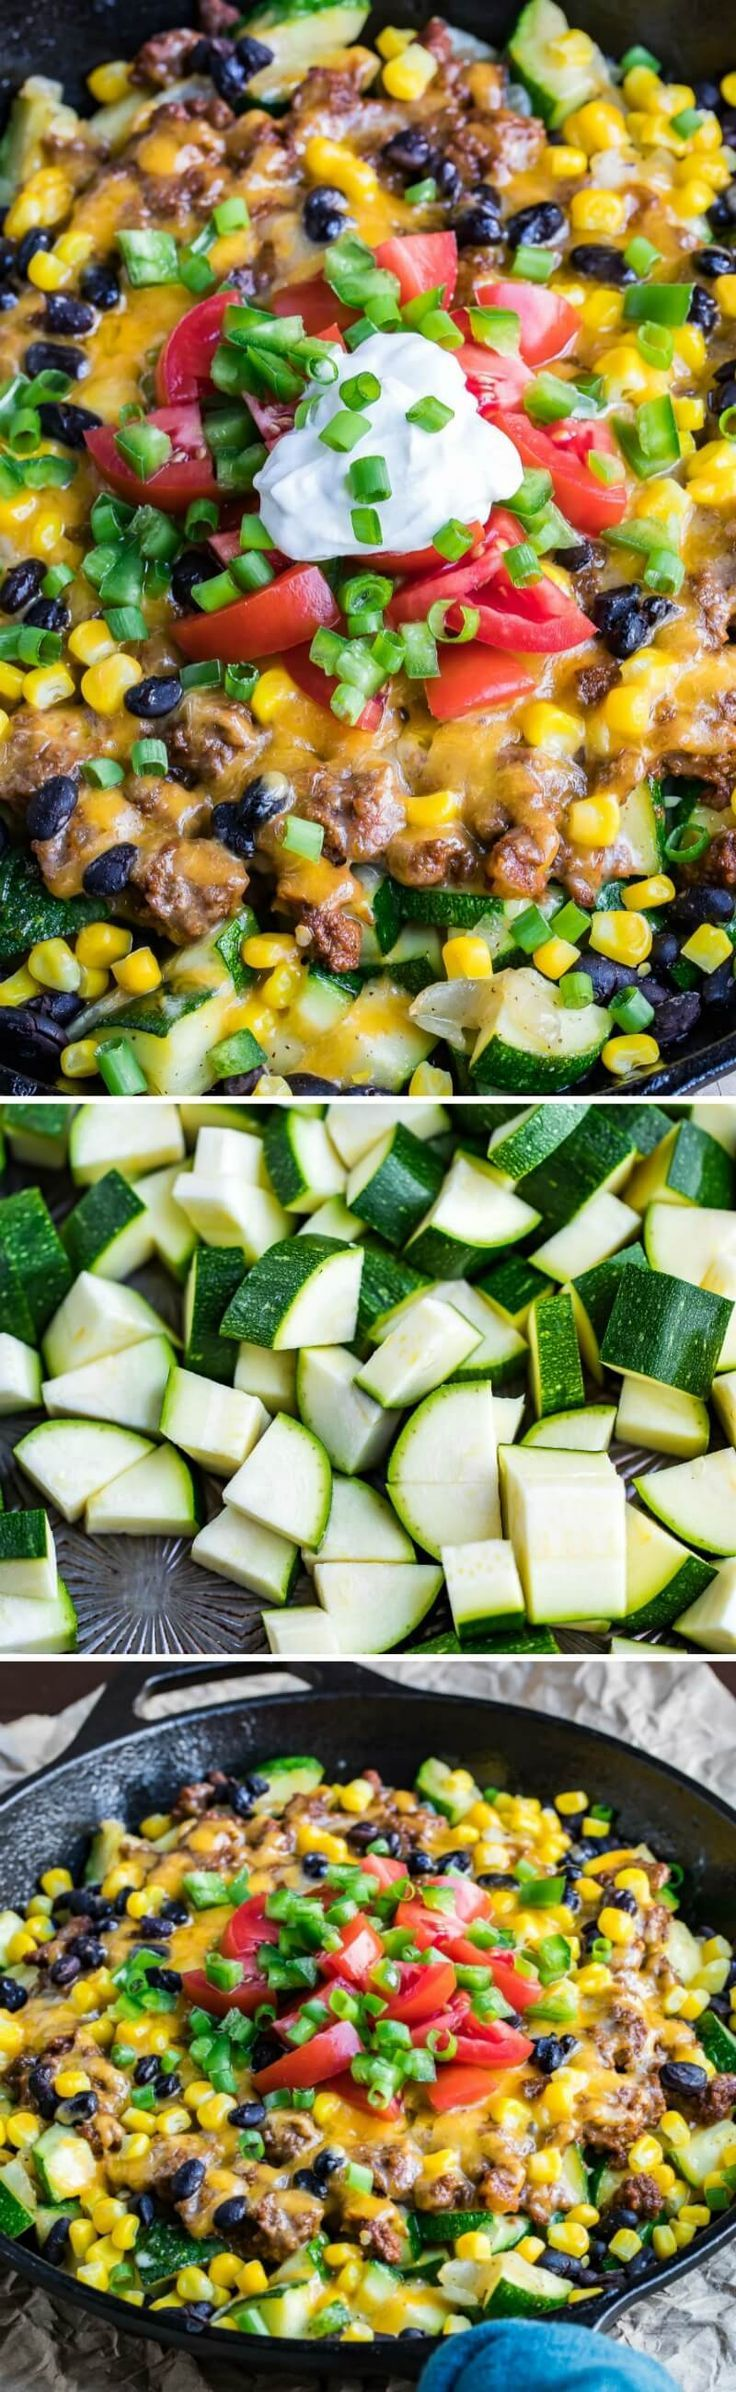 This easy Cheesy One Pan Zucchini Taco Skillet is a totalcrowd-pleaser and ready to rock your weeknight dinner game in record time!